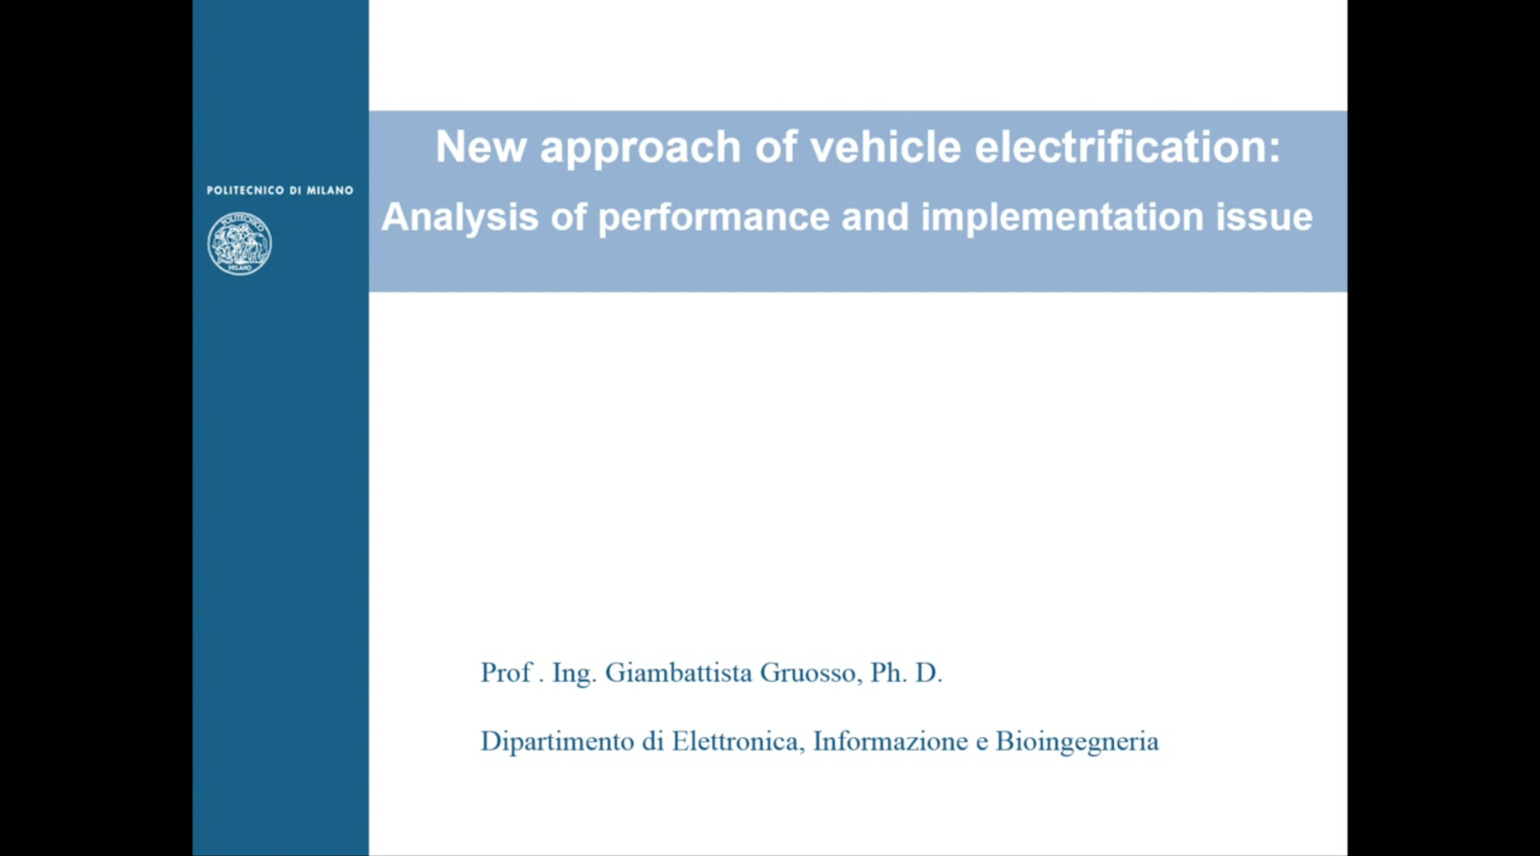 New Approach of Vehicle Electrification: Analysis of Performance and Implementation Issue